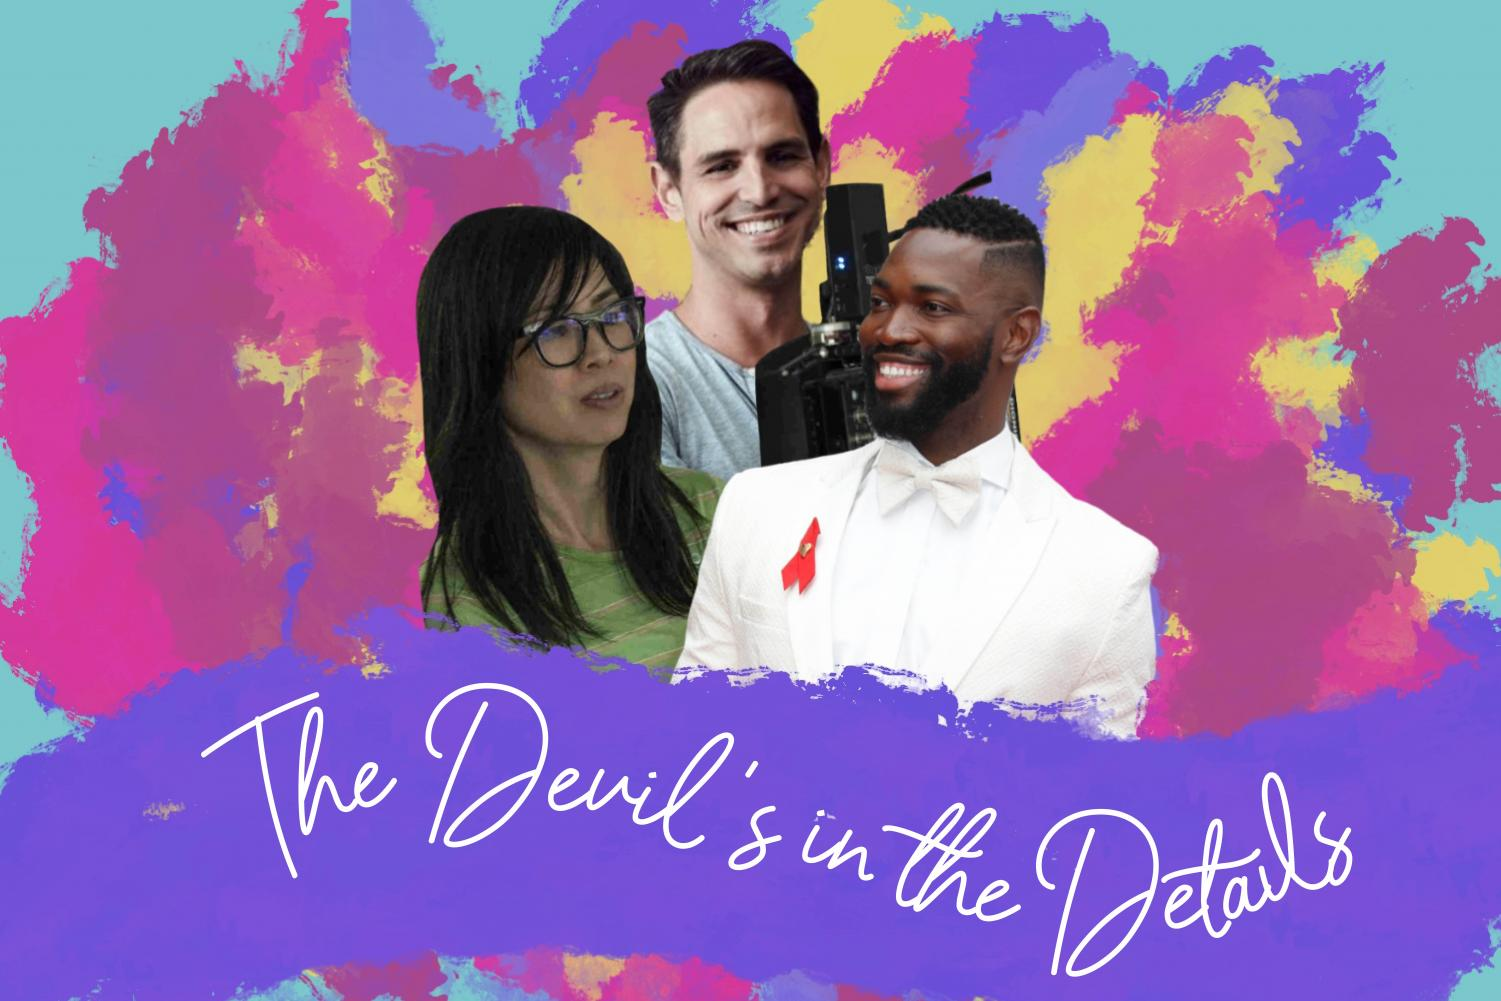 dailynorthwestern.com: The devil's in the details: How artists' smallest choices prove the need for representation in media